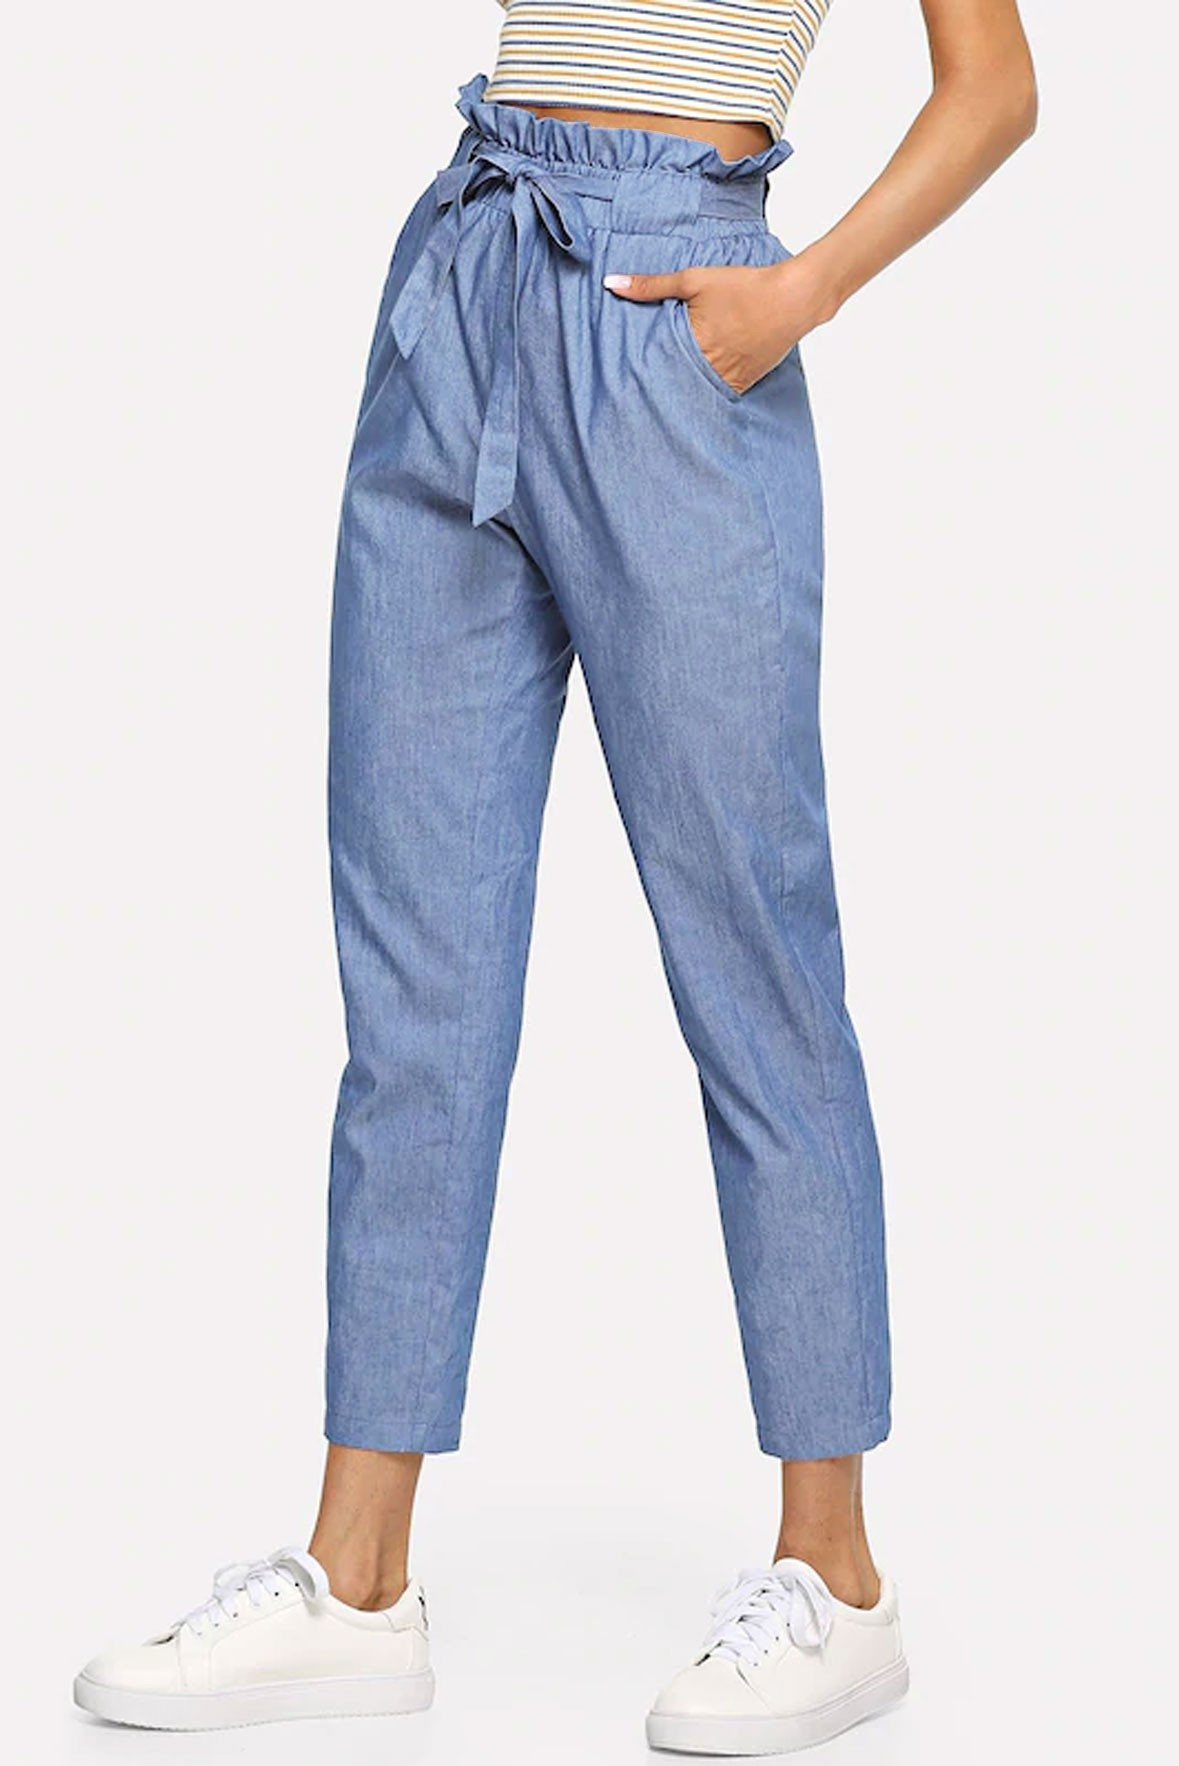 Ruffle detail belted chambray trouser